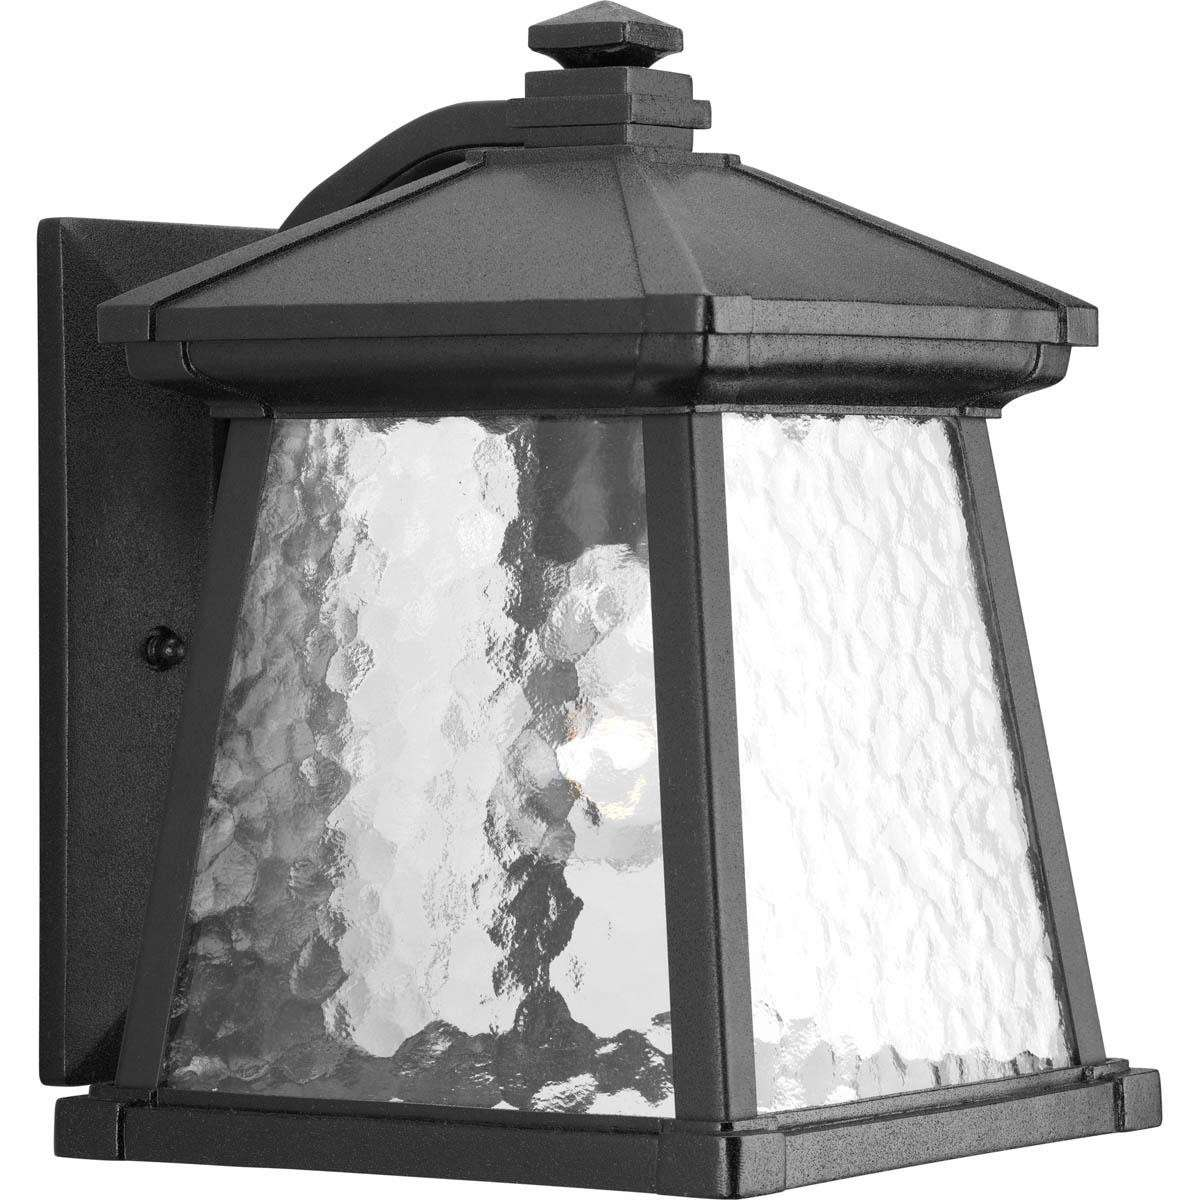 Progress P5907-31 One-light wall lantern in Black finish with clear water glass.